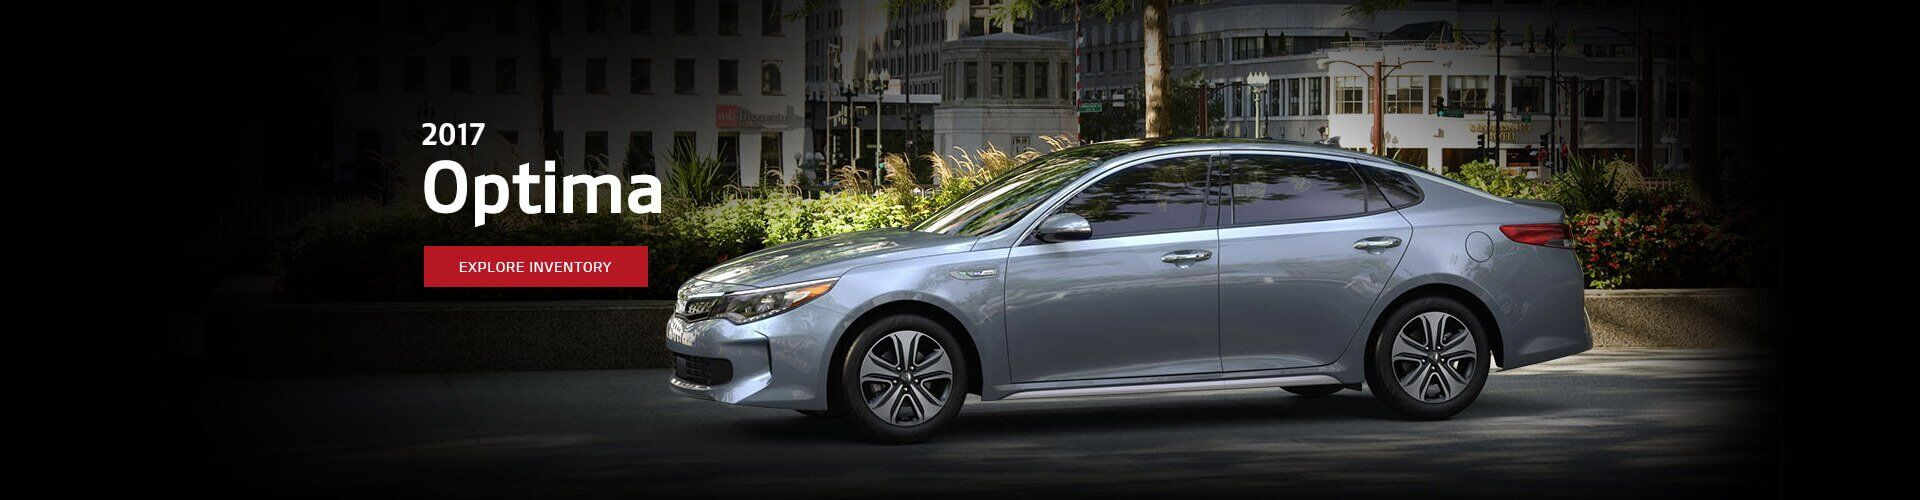 New Kia Optima at Fuccillo Kia of Wesley Chapel